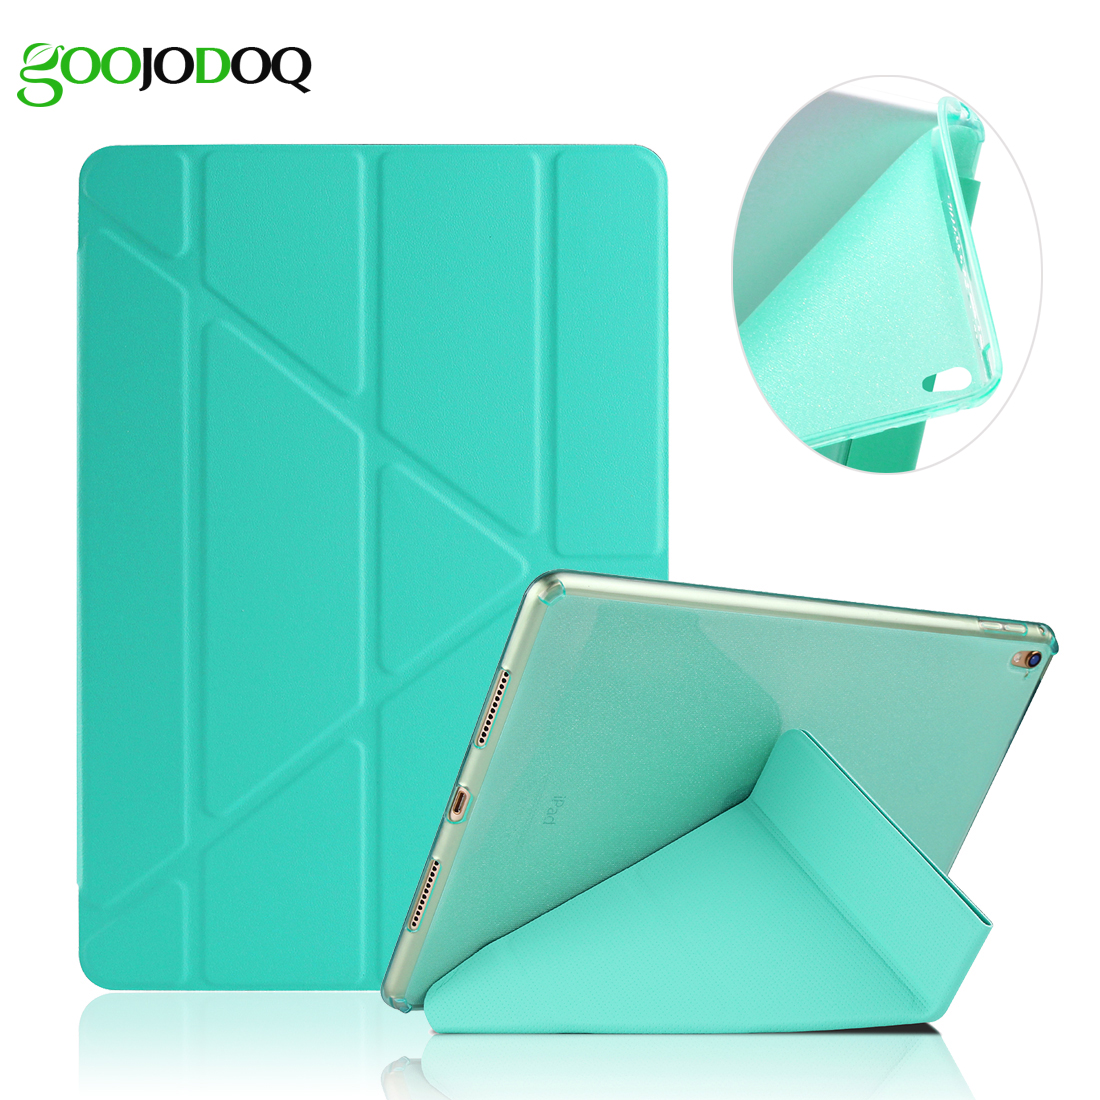 Case For iPad Pro 9.7 / iPad 2 3 4 PU Leather Smart Cover, [Multiple Stand + Glitter Silicone Soft Back] for iPad 4 Case stylish protective pu leather silicone case cover stand for ipad 2 3 4 yellow white blue